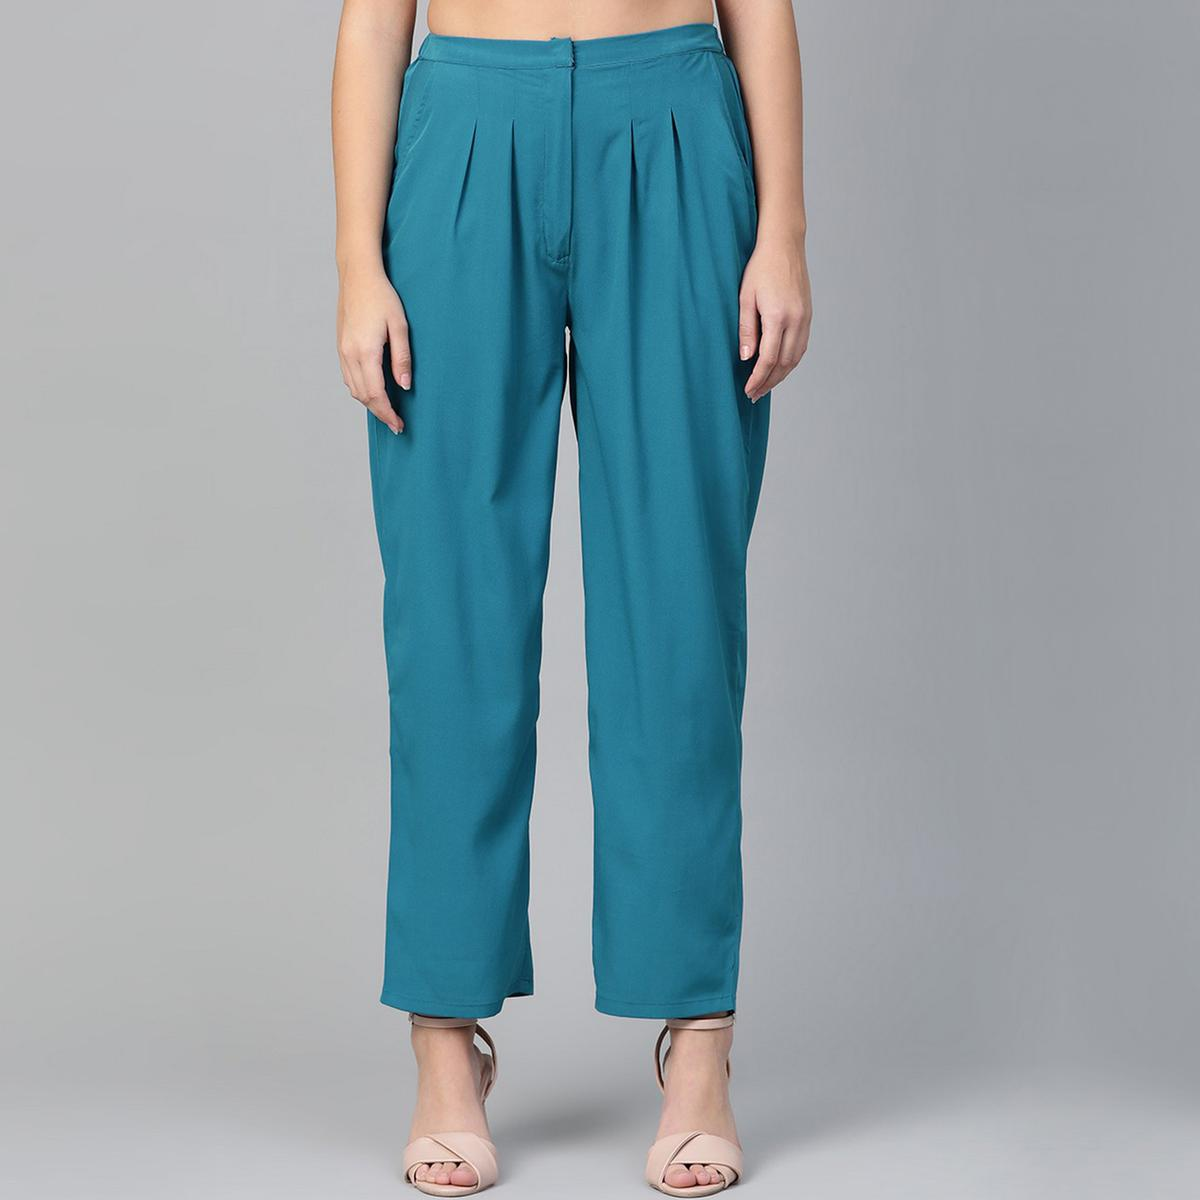 Entrancing Blue Colored Casual Wear Polyester Trouser